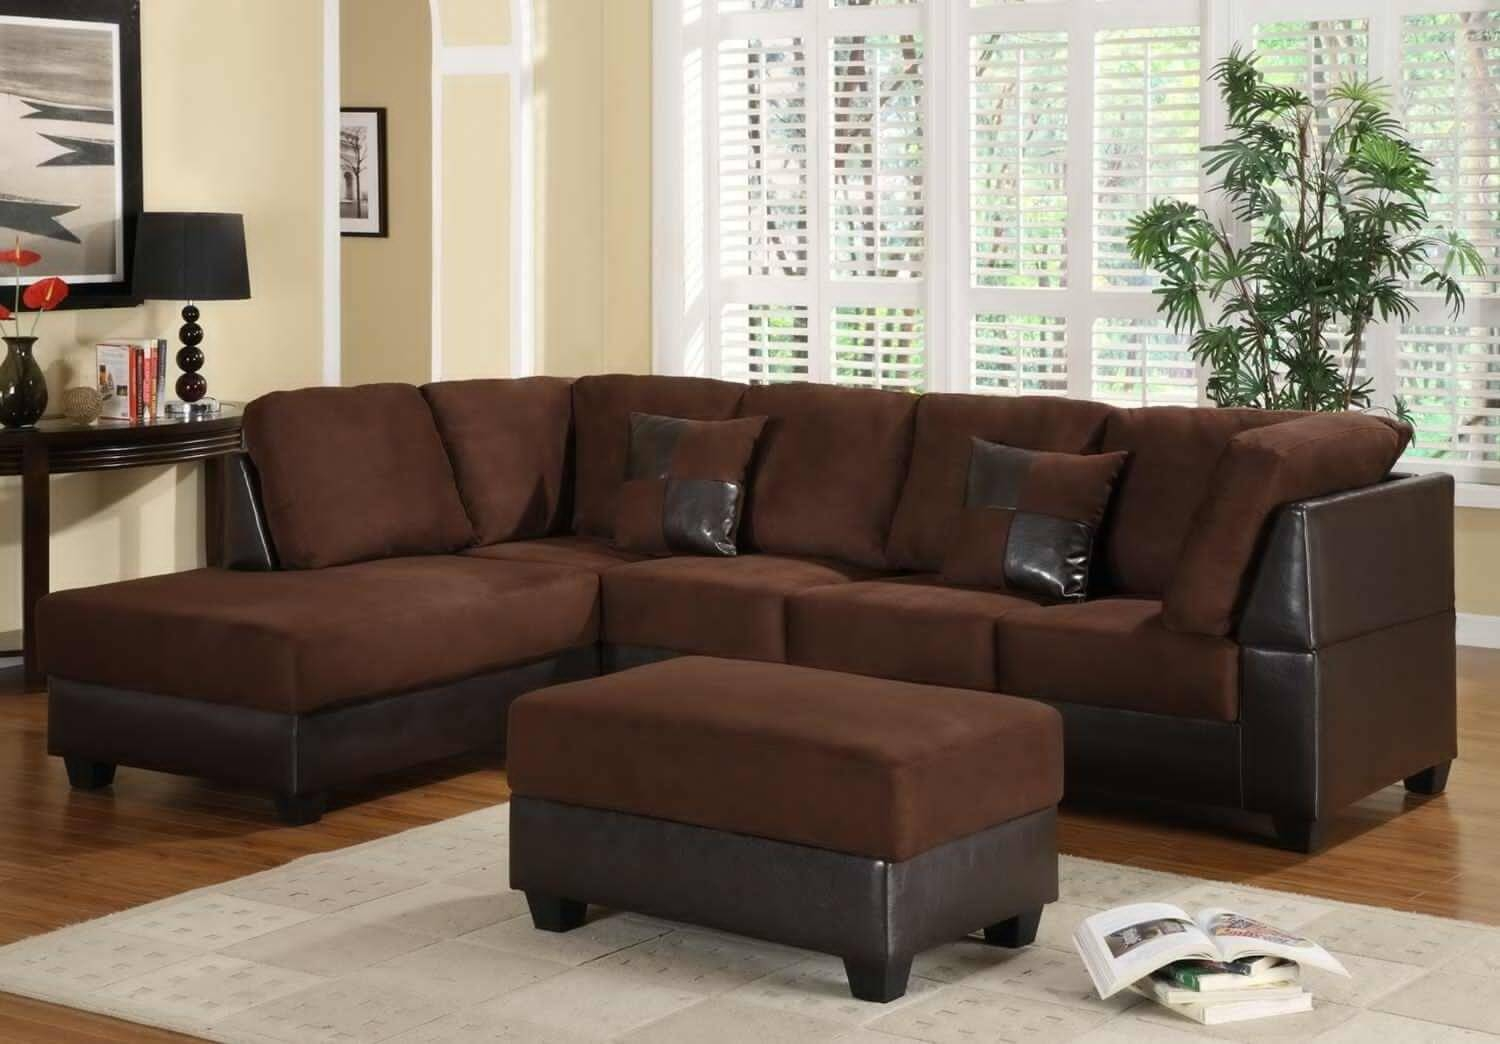 Luxury High Quality Sectional Sofa 11 With Additional Modern Sofa in Quality Sectional Sofa (Image 12 of 30)